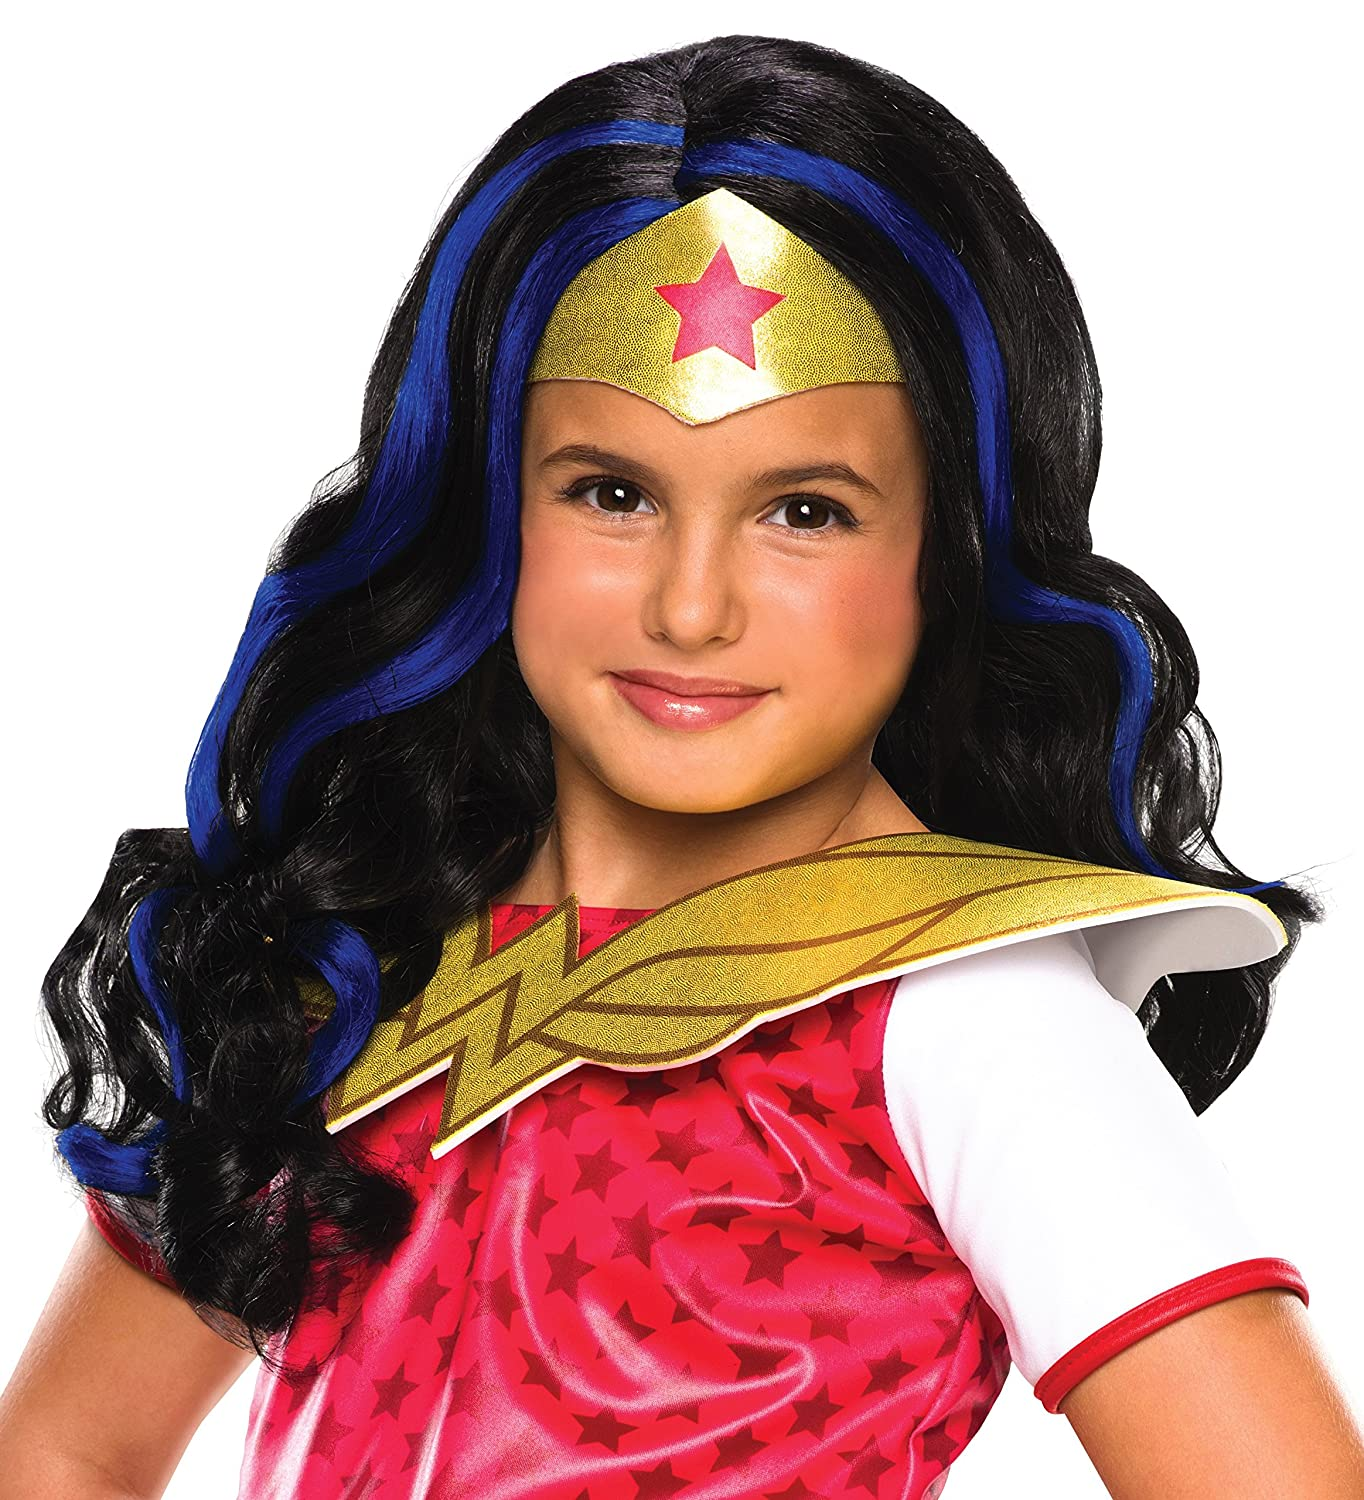 Rubies Costume Girls DC Super Hero Wonder Woman Wig 32971